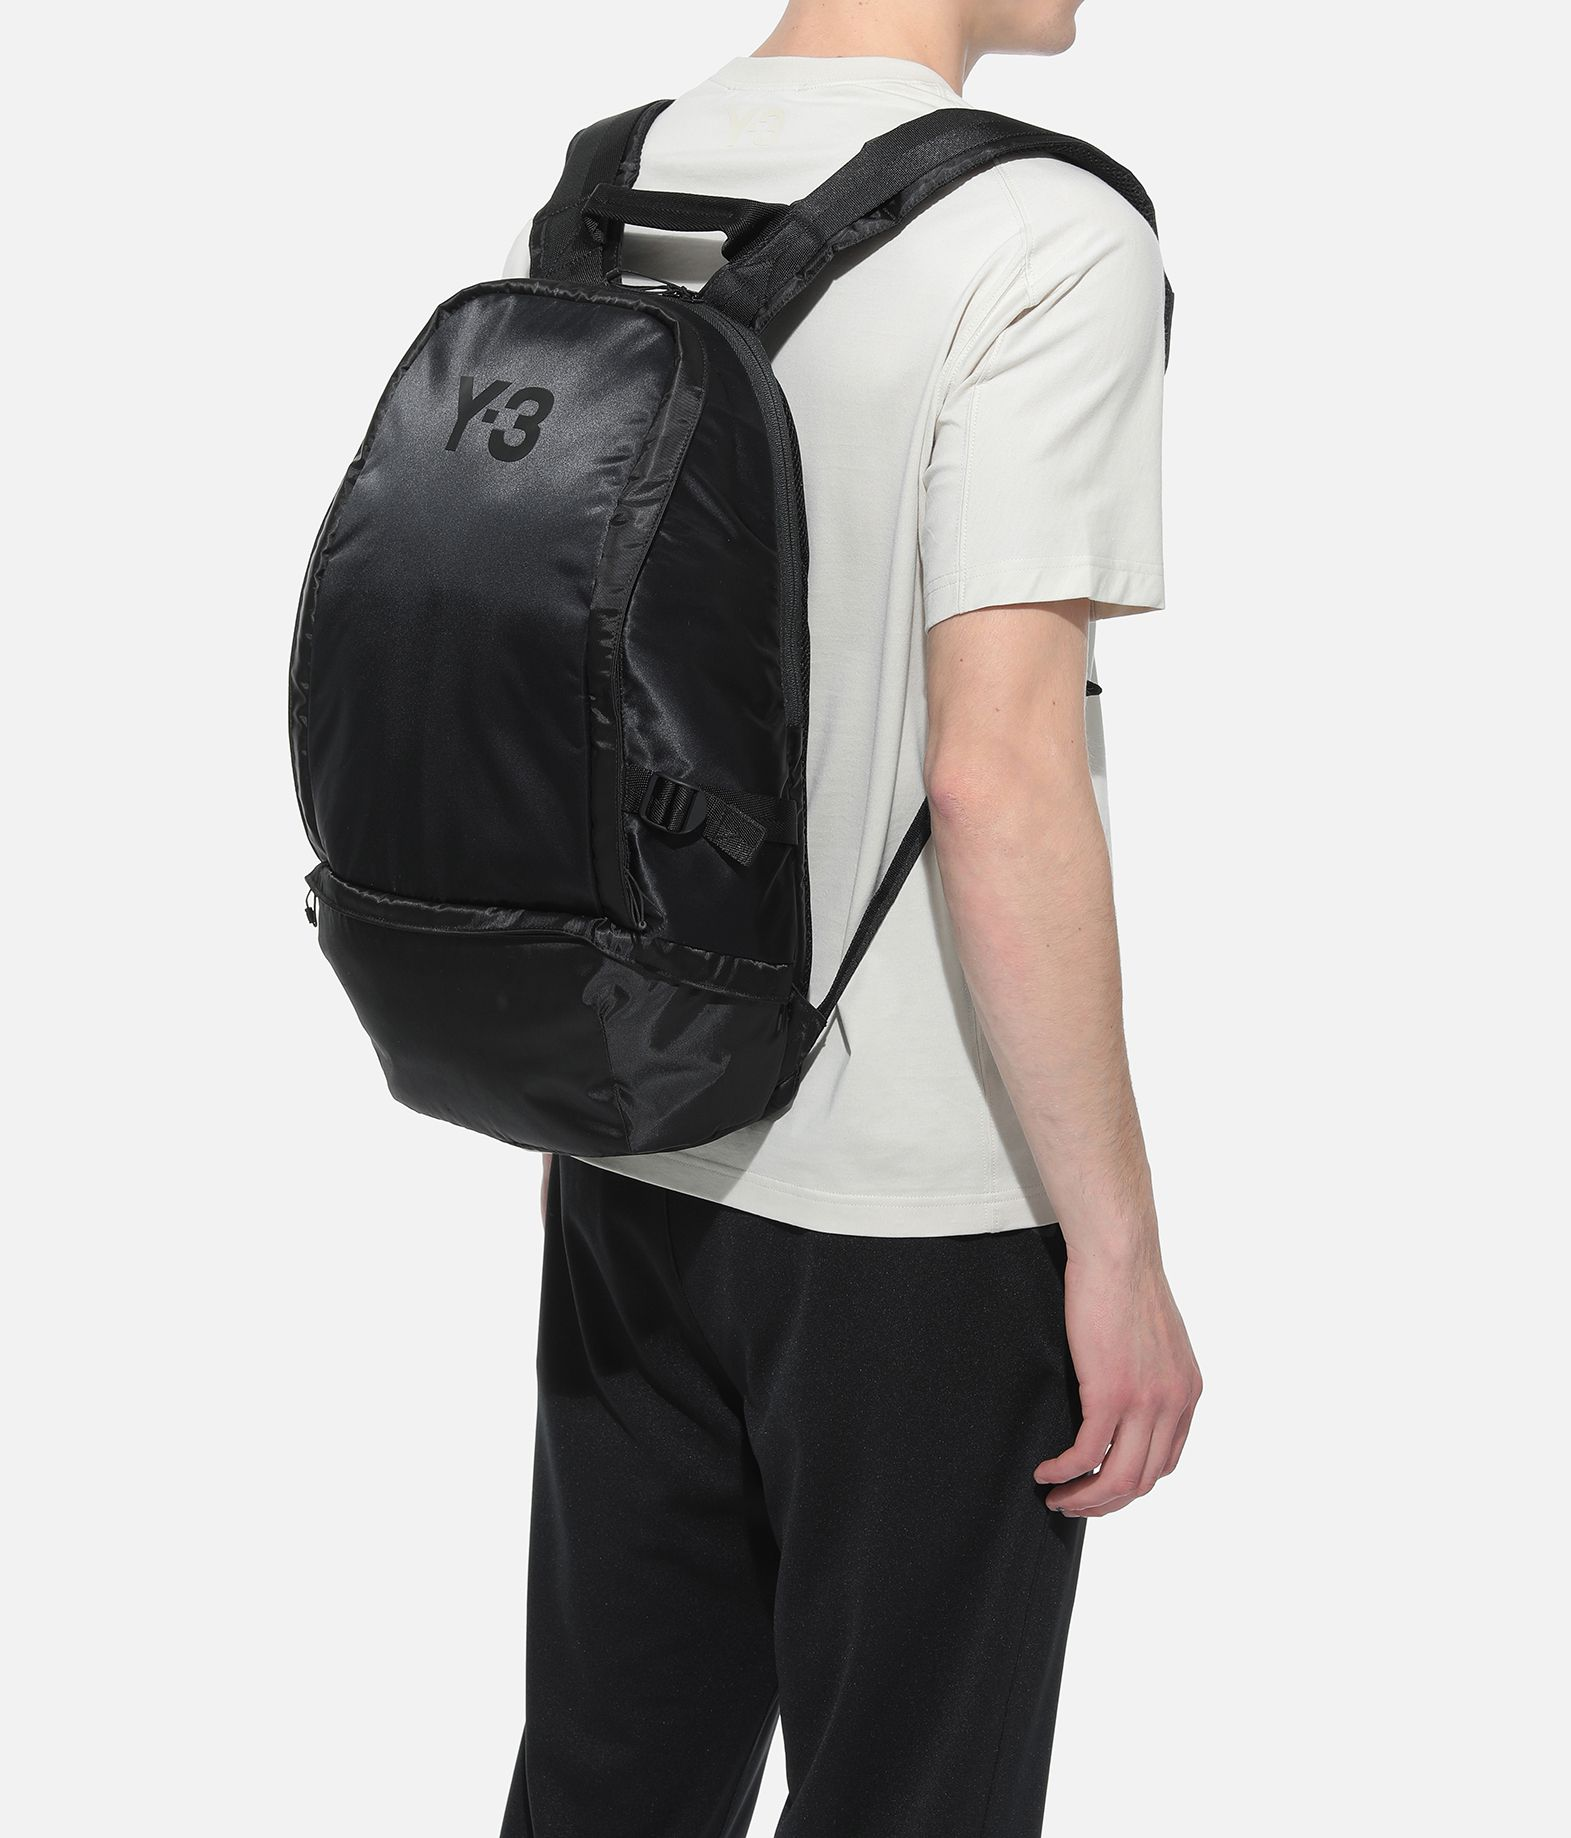 Y-3 Y-3 Racer Backpack Backpack E r